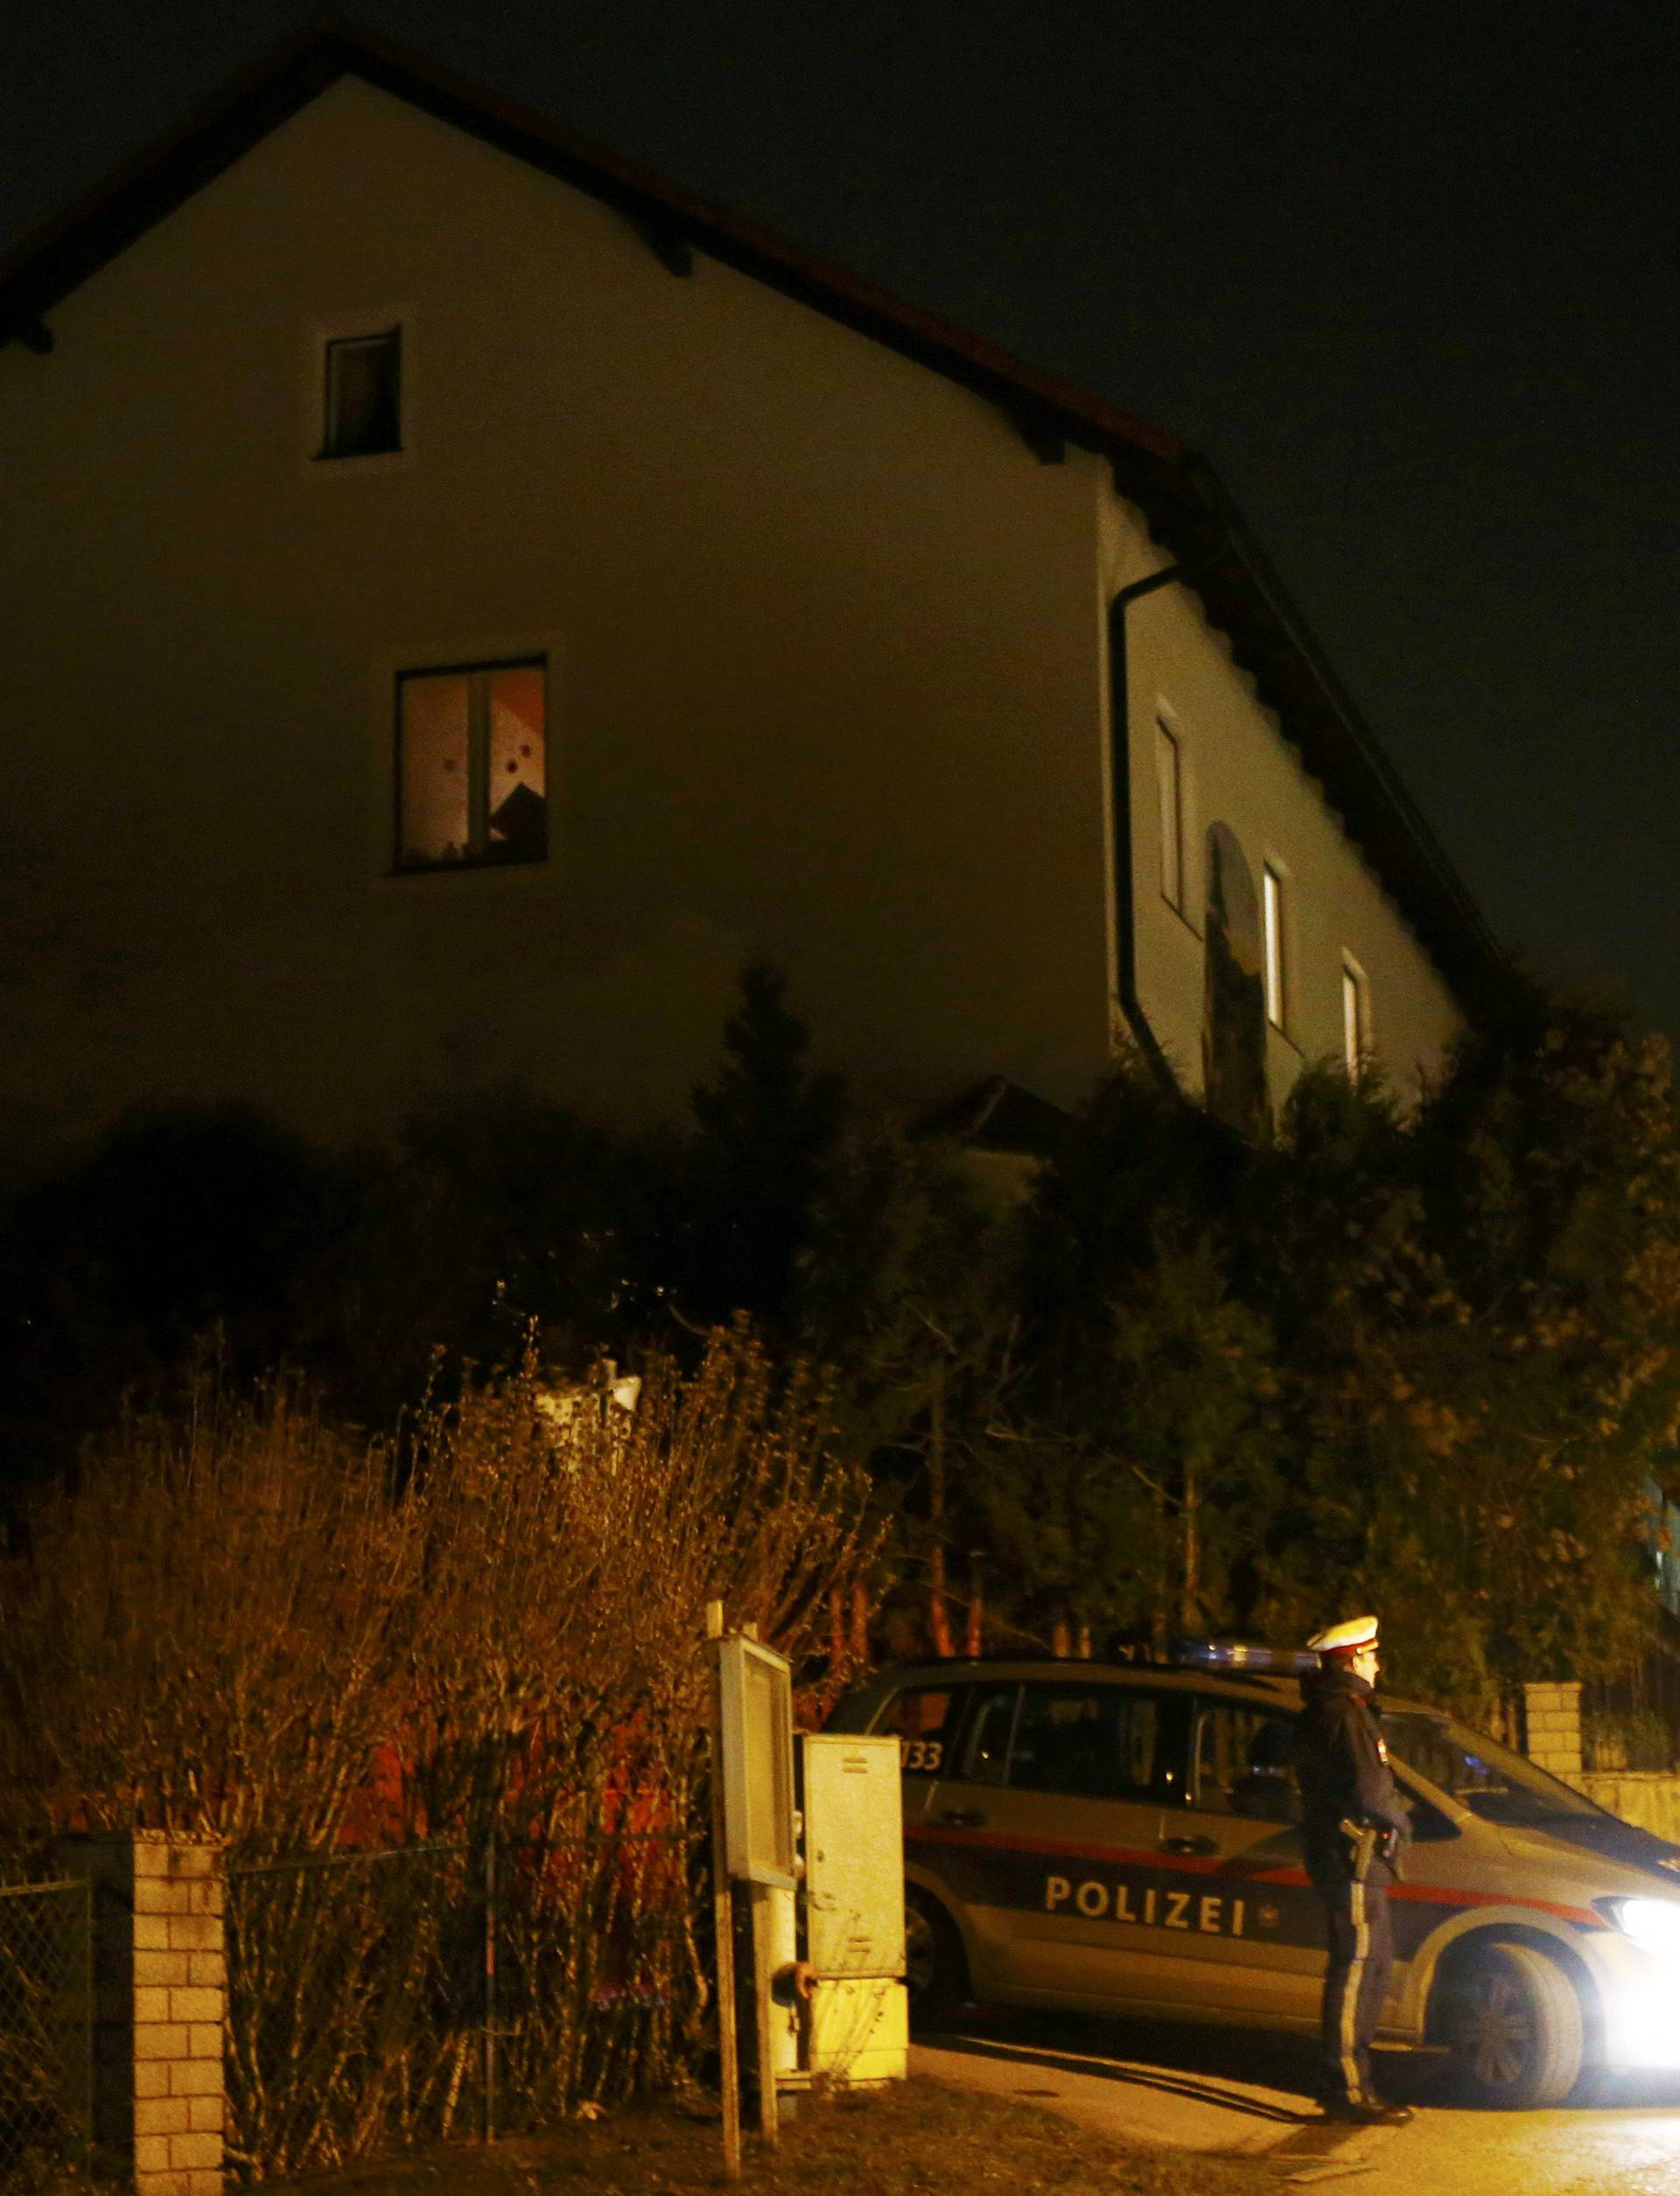 Police stand in front of a house where six people were found dead in Boeheimkirchen